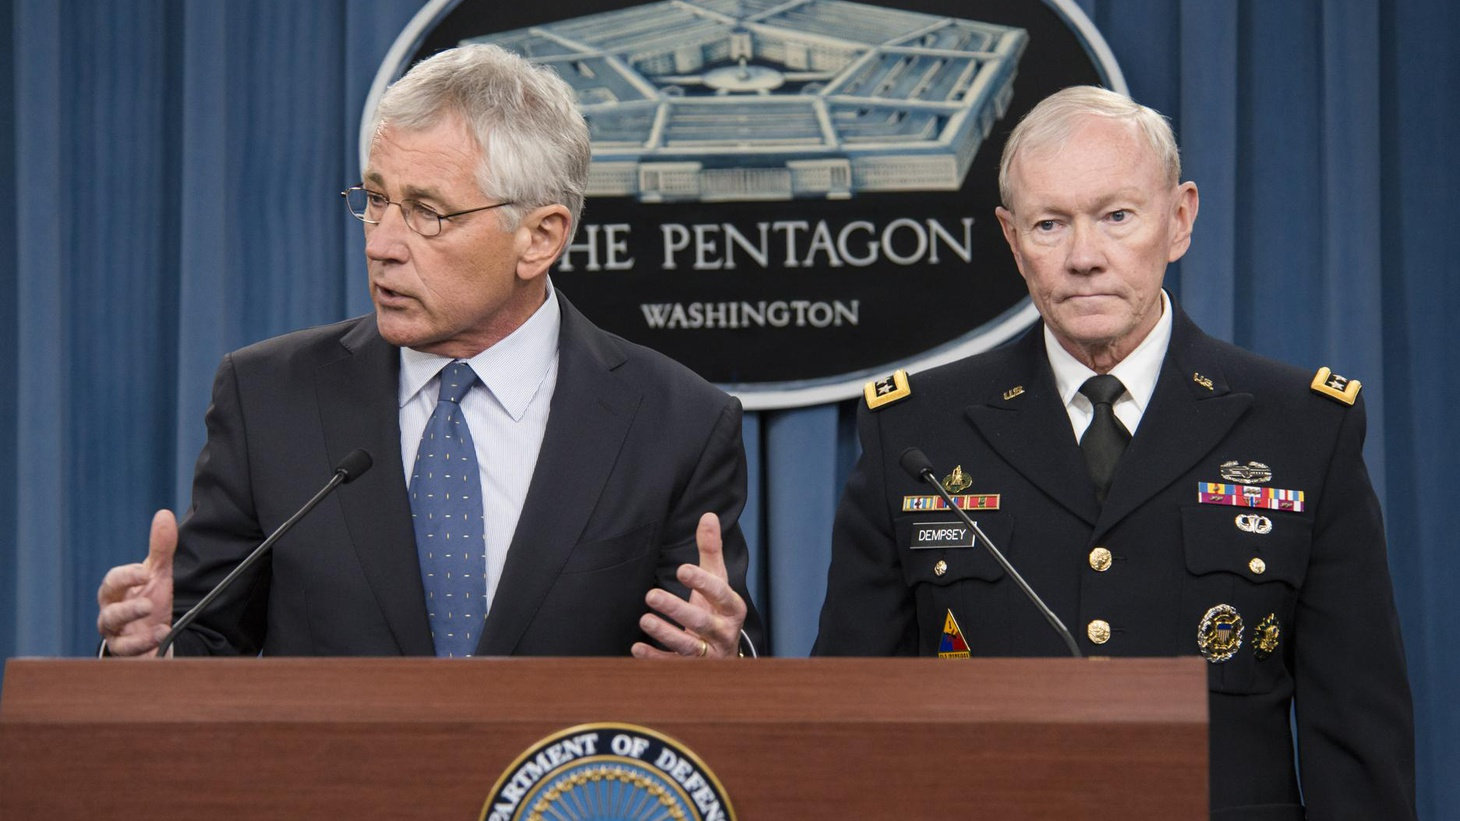 Defense Secretary Hagel wants to cut the Pentagon budget. We hear what he's proposing, what it means for national security and the likely response from Congress.